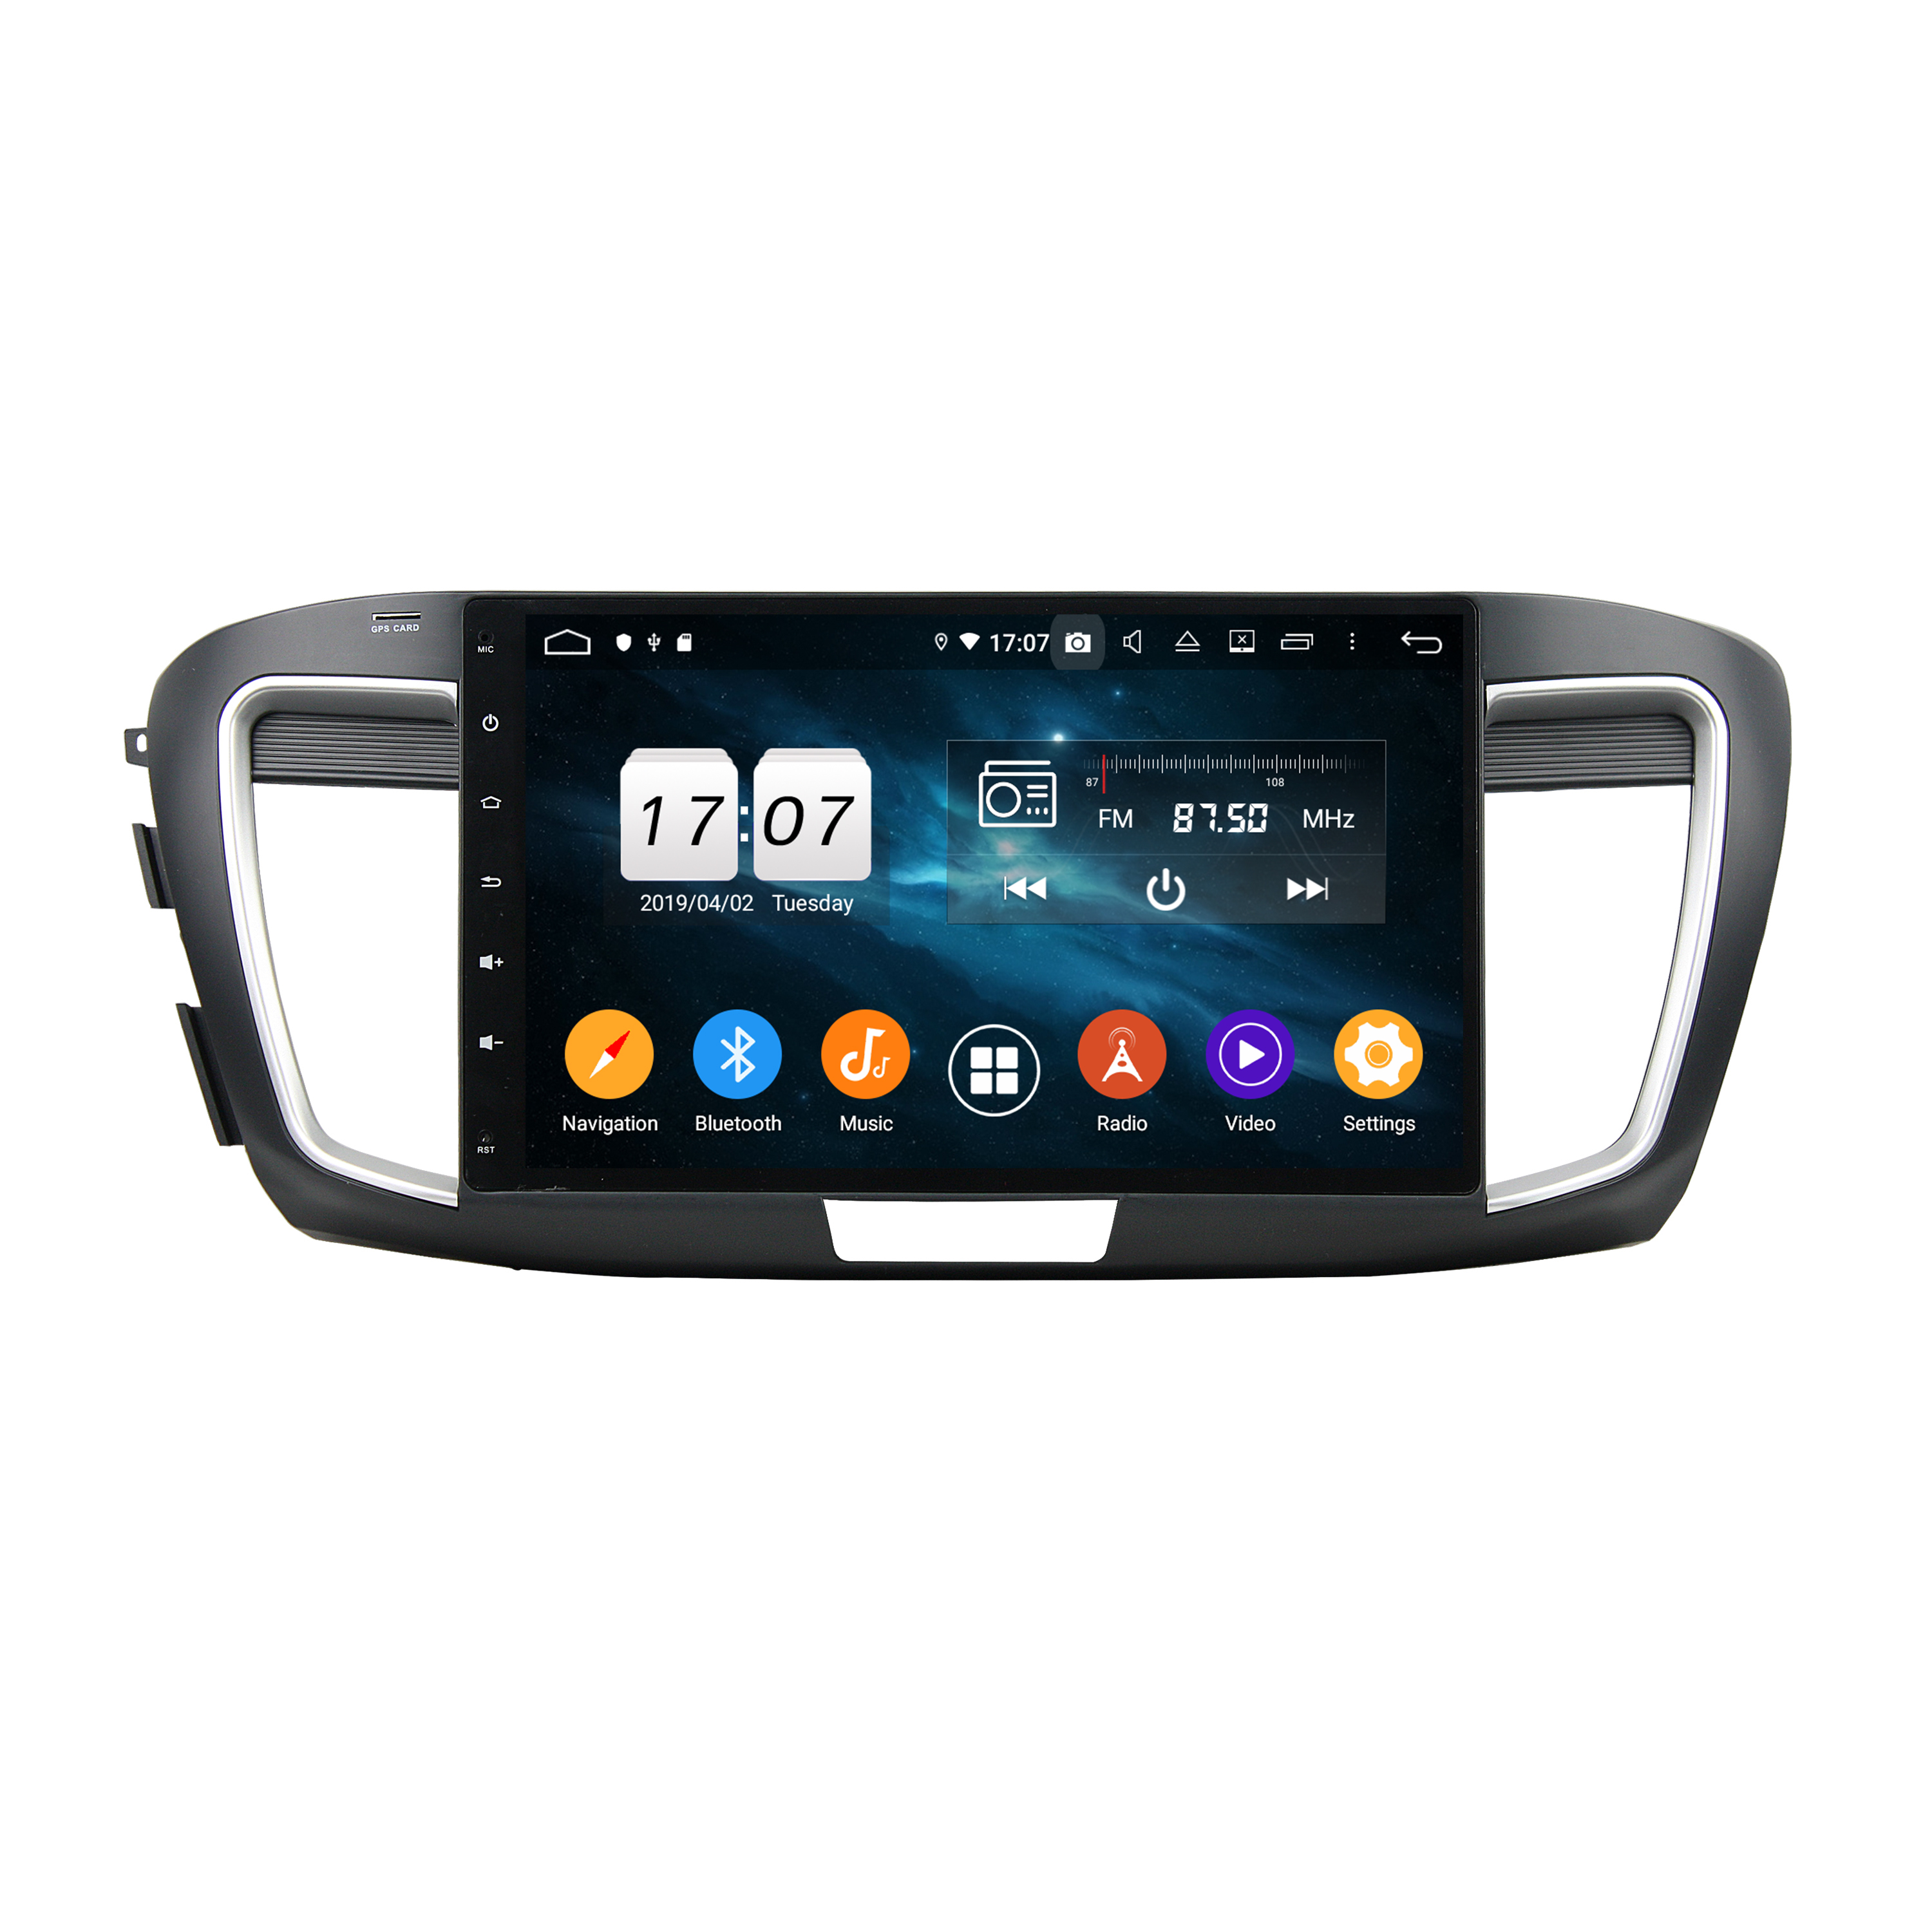 KD-1053 Hot sale model android 9.0 octa core car dvd screen for A <strong>c</strong> <strong>c</strong> o r d 9 2015-2017 gps navigation support DSP carplay DAB